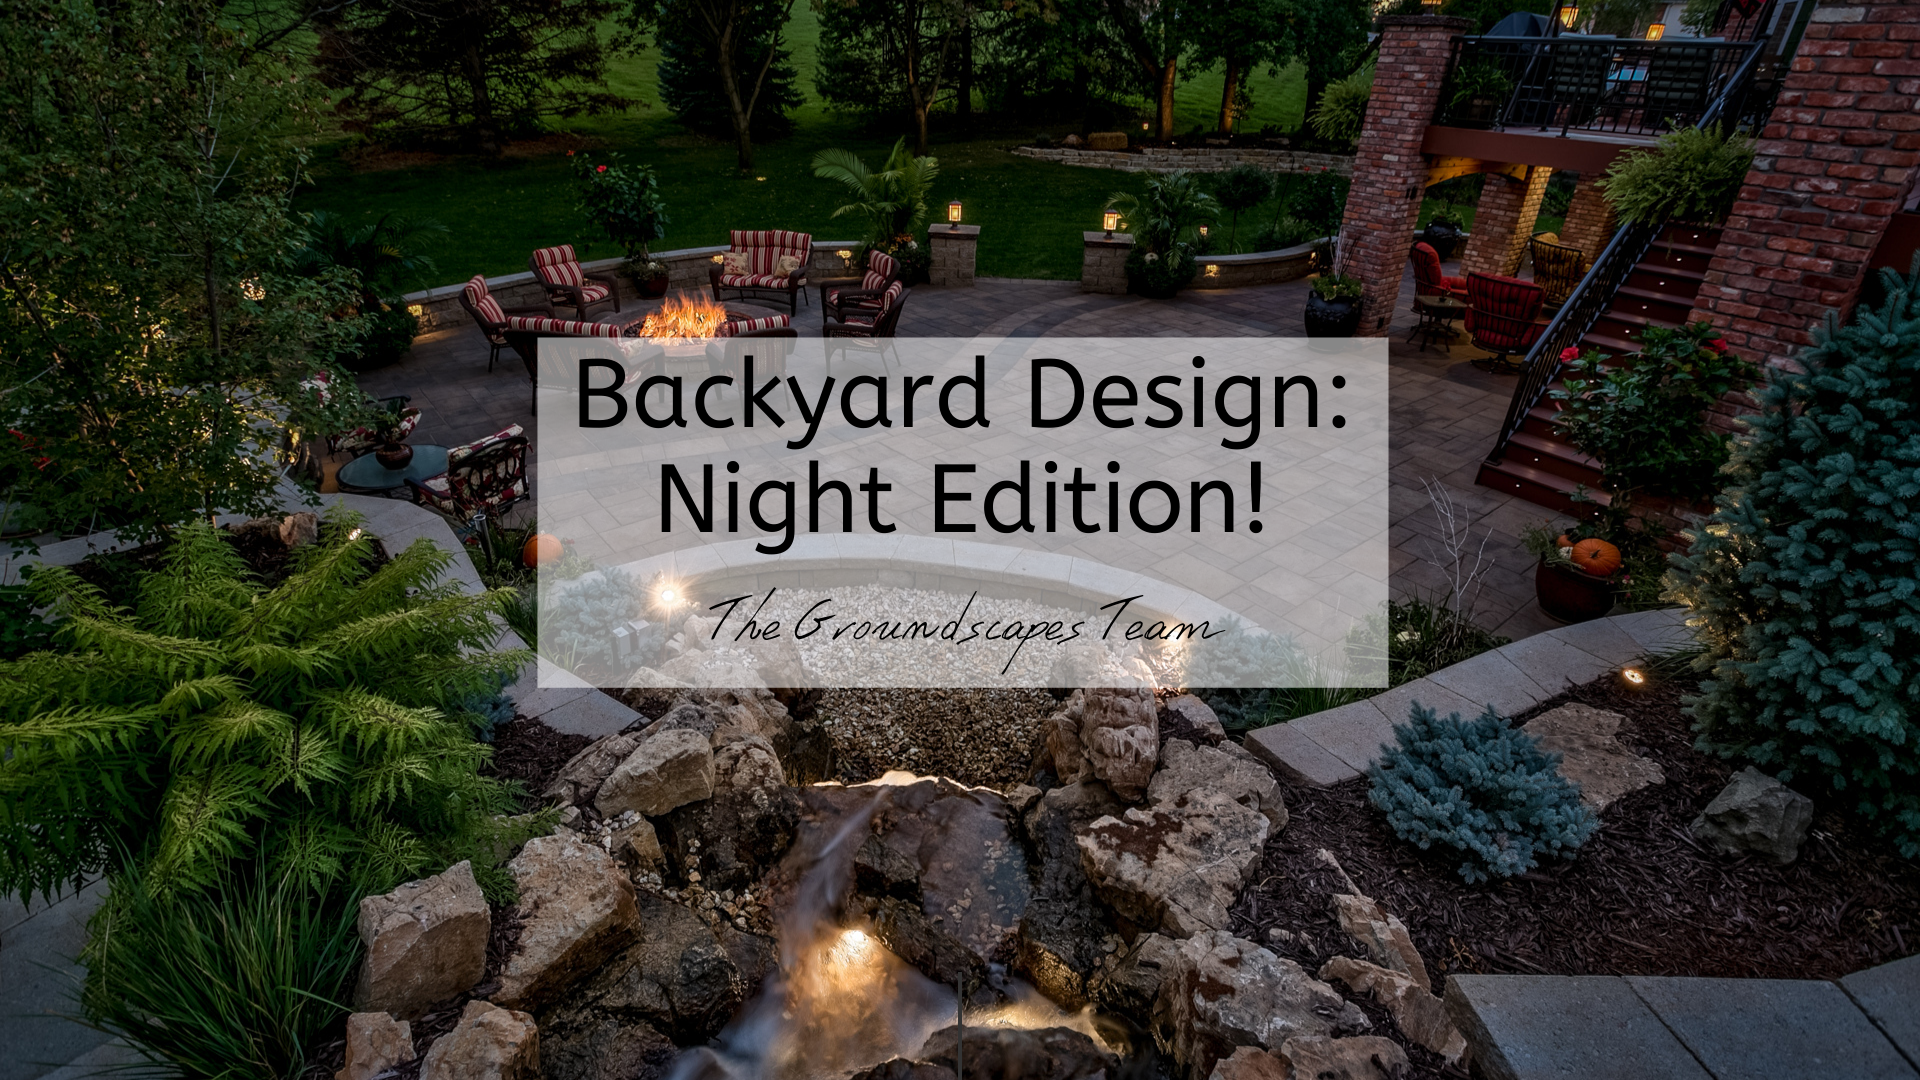 Backyard Design: Night Edition!